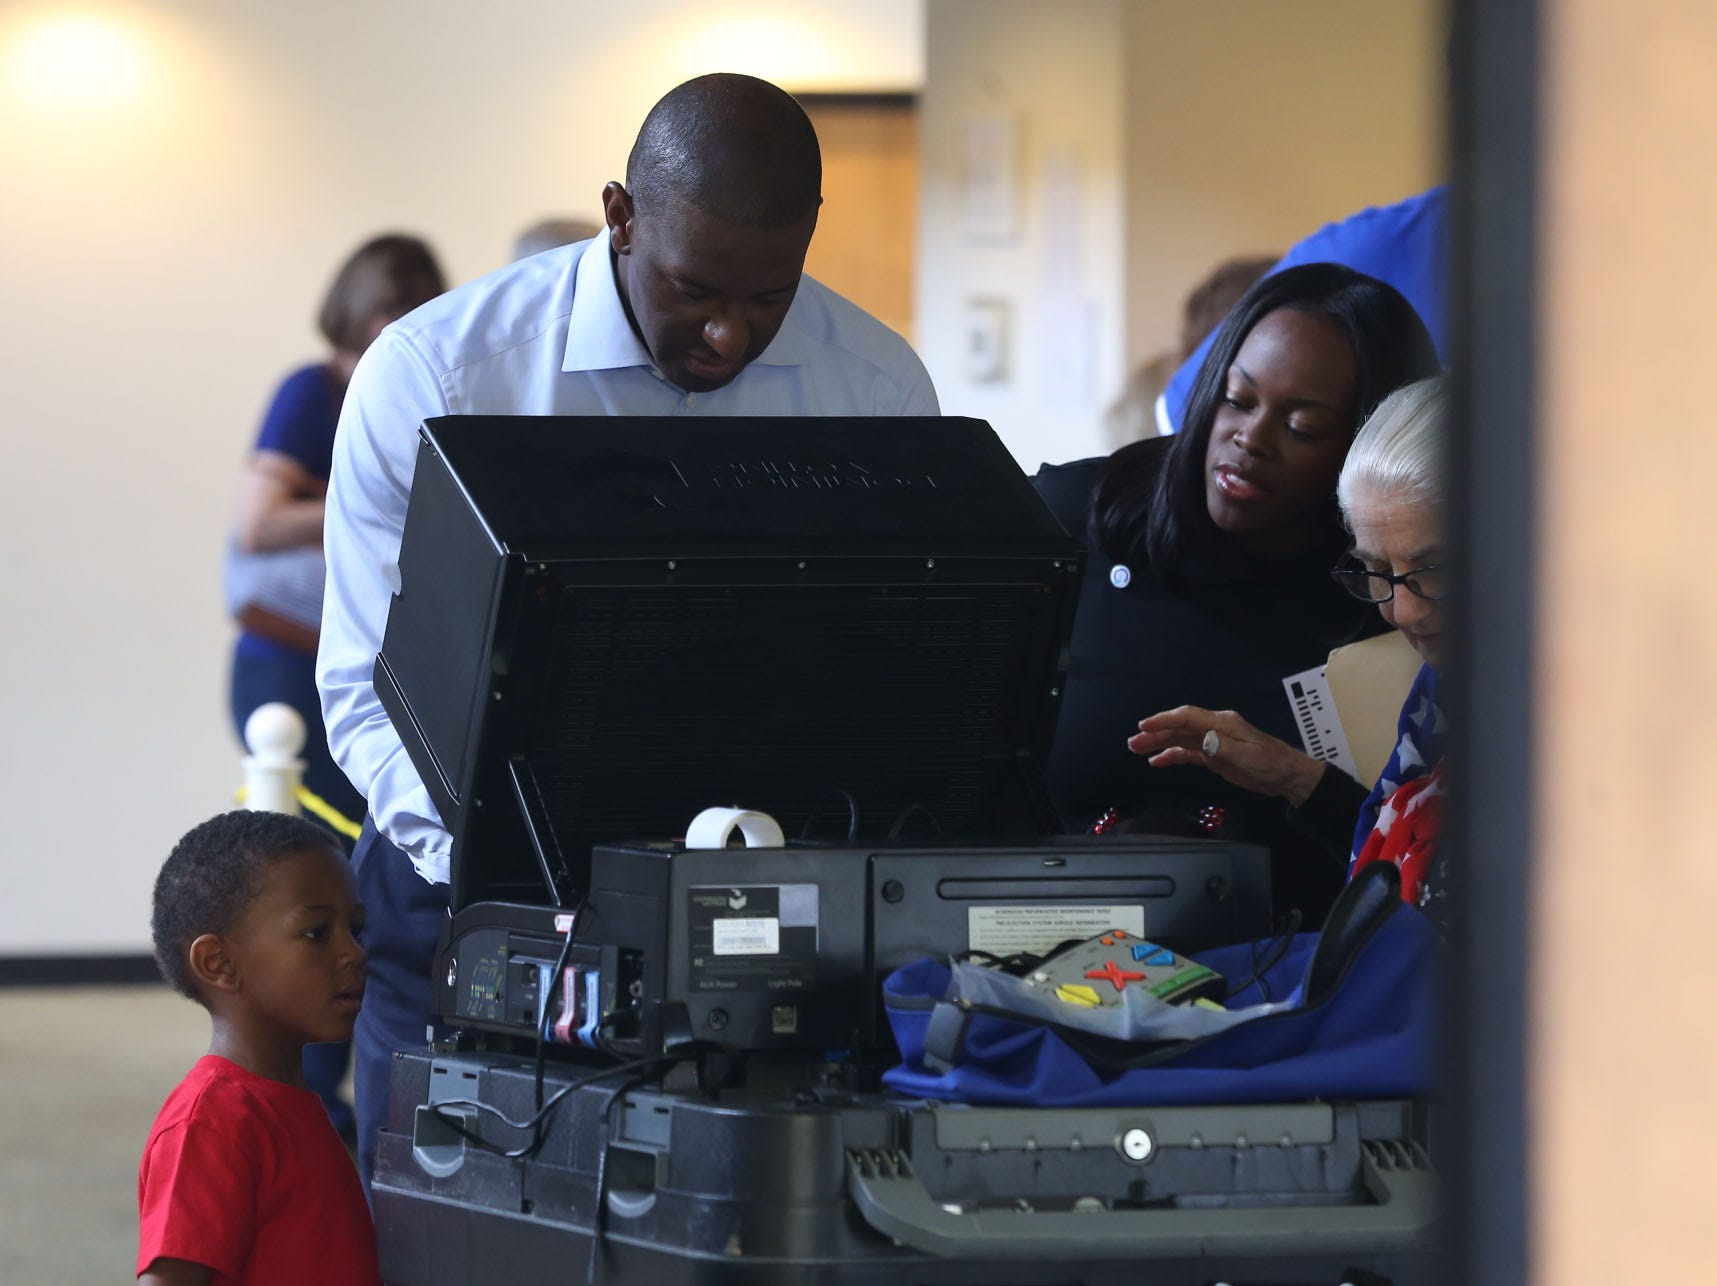 Candidate for Florida Governor Andrew Gillum arrives at Good Shepherd Catholic Church on Election Day to cast his ballot. His wife, R. Jai Gillum also casts her ballot.